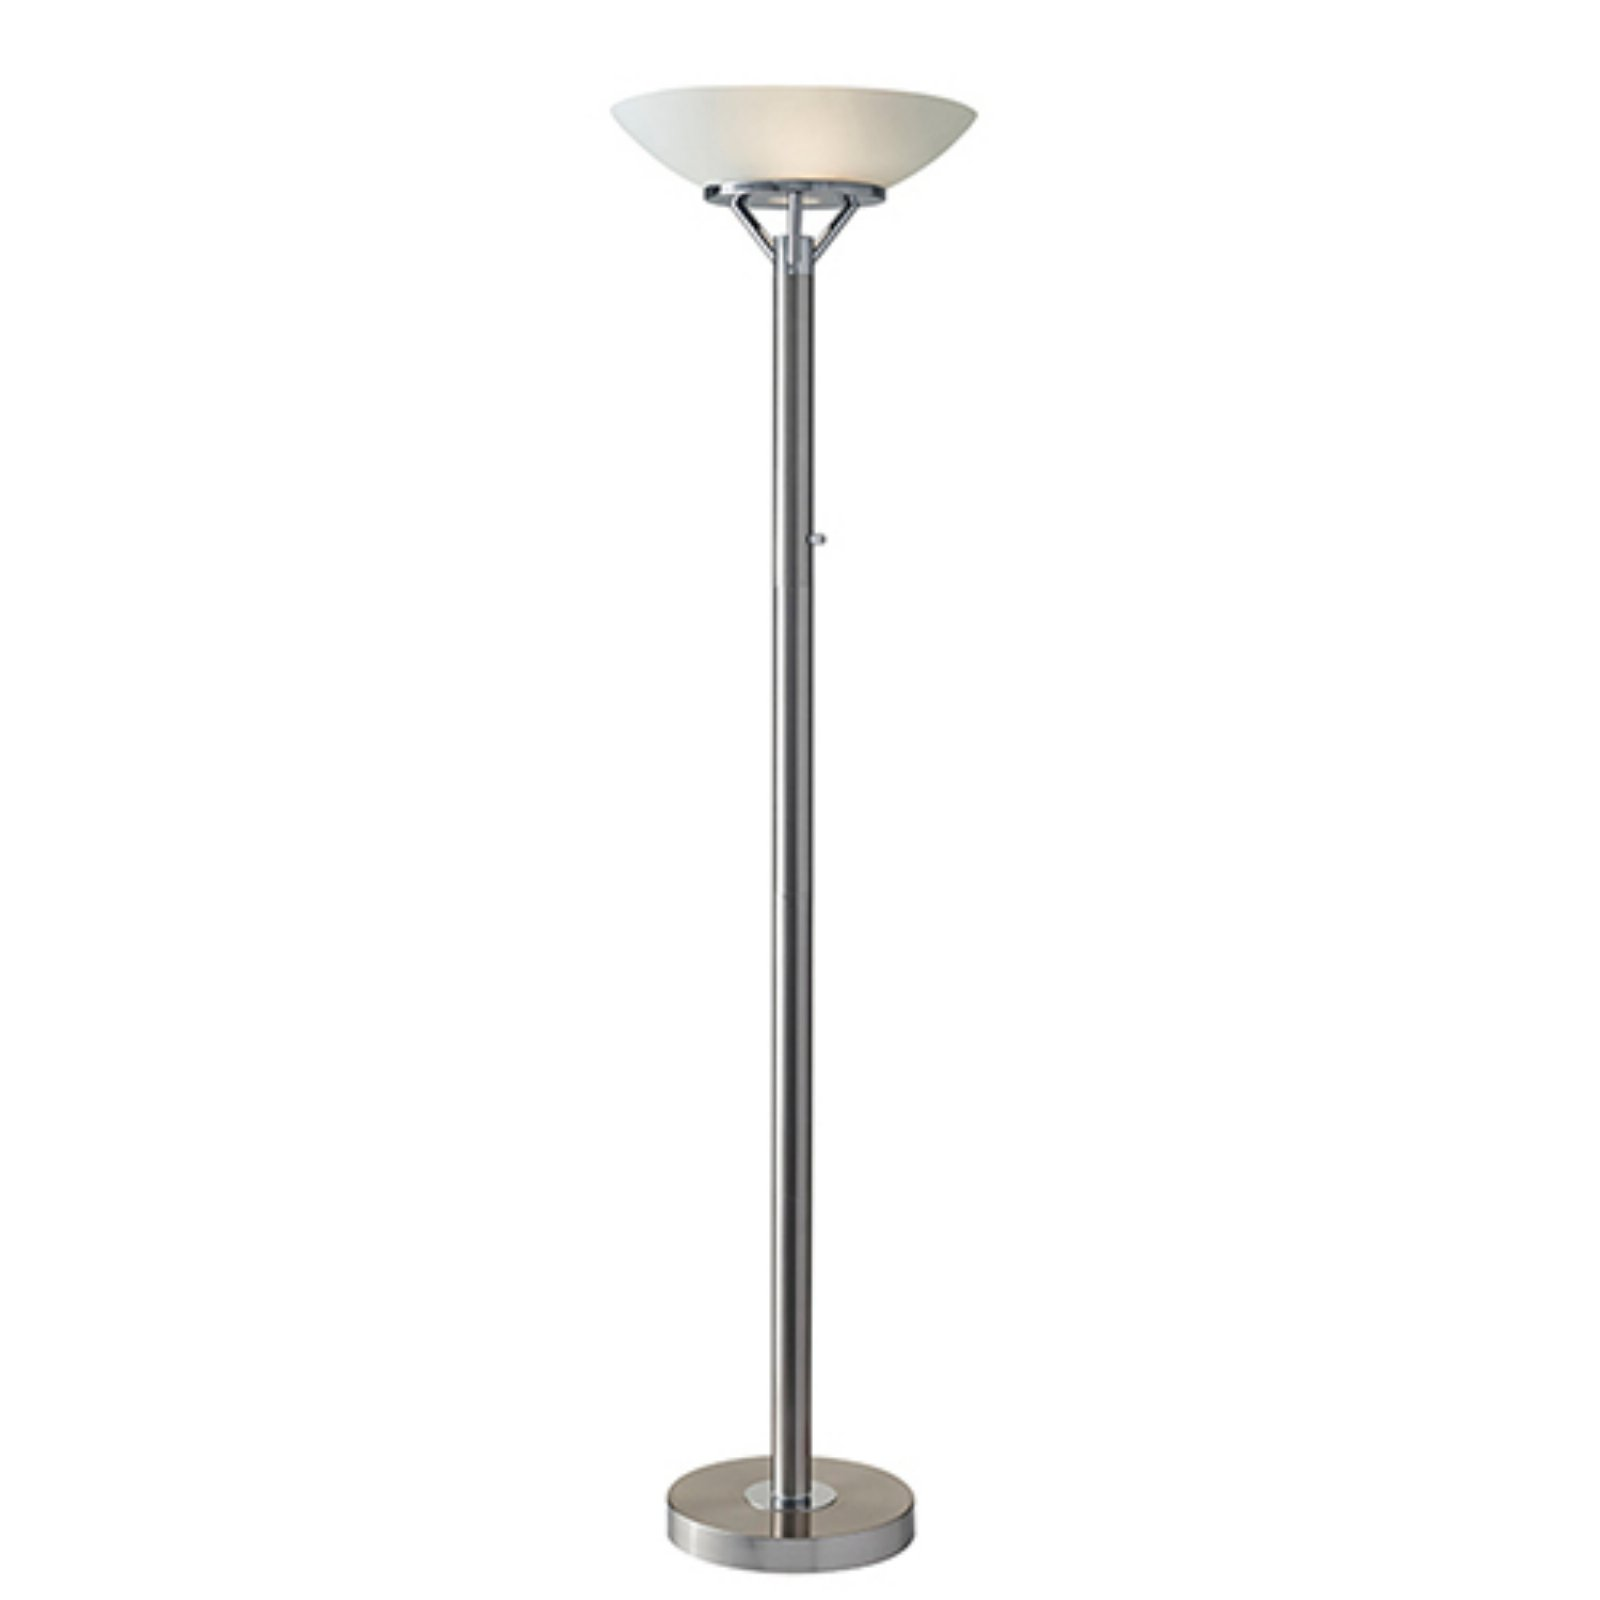 Adesso Expo Torchiere Floor Lamp